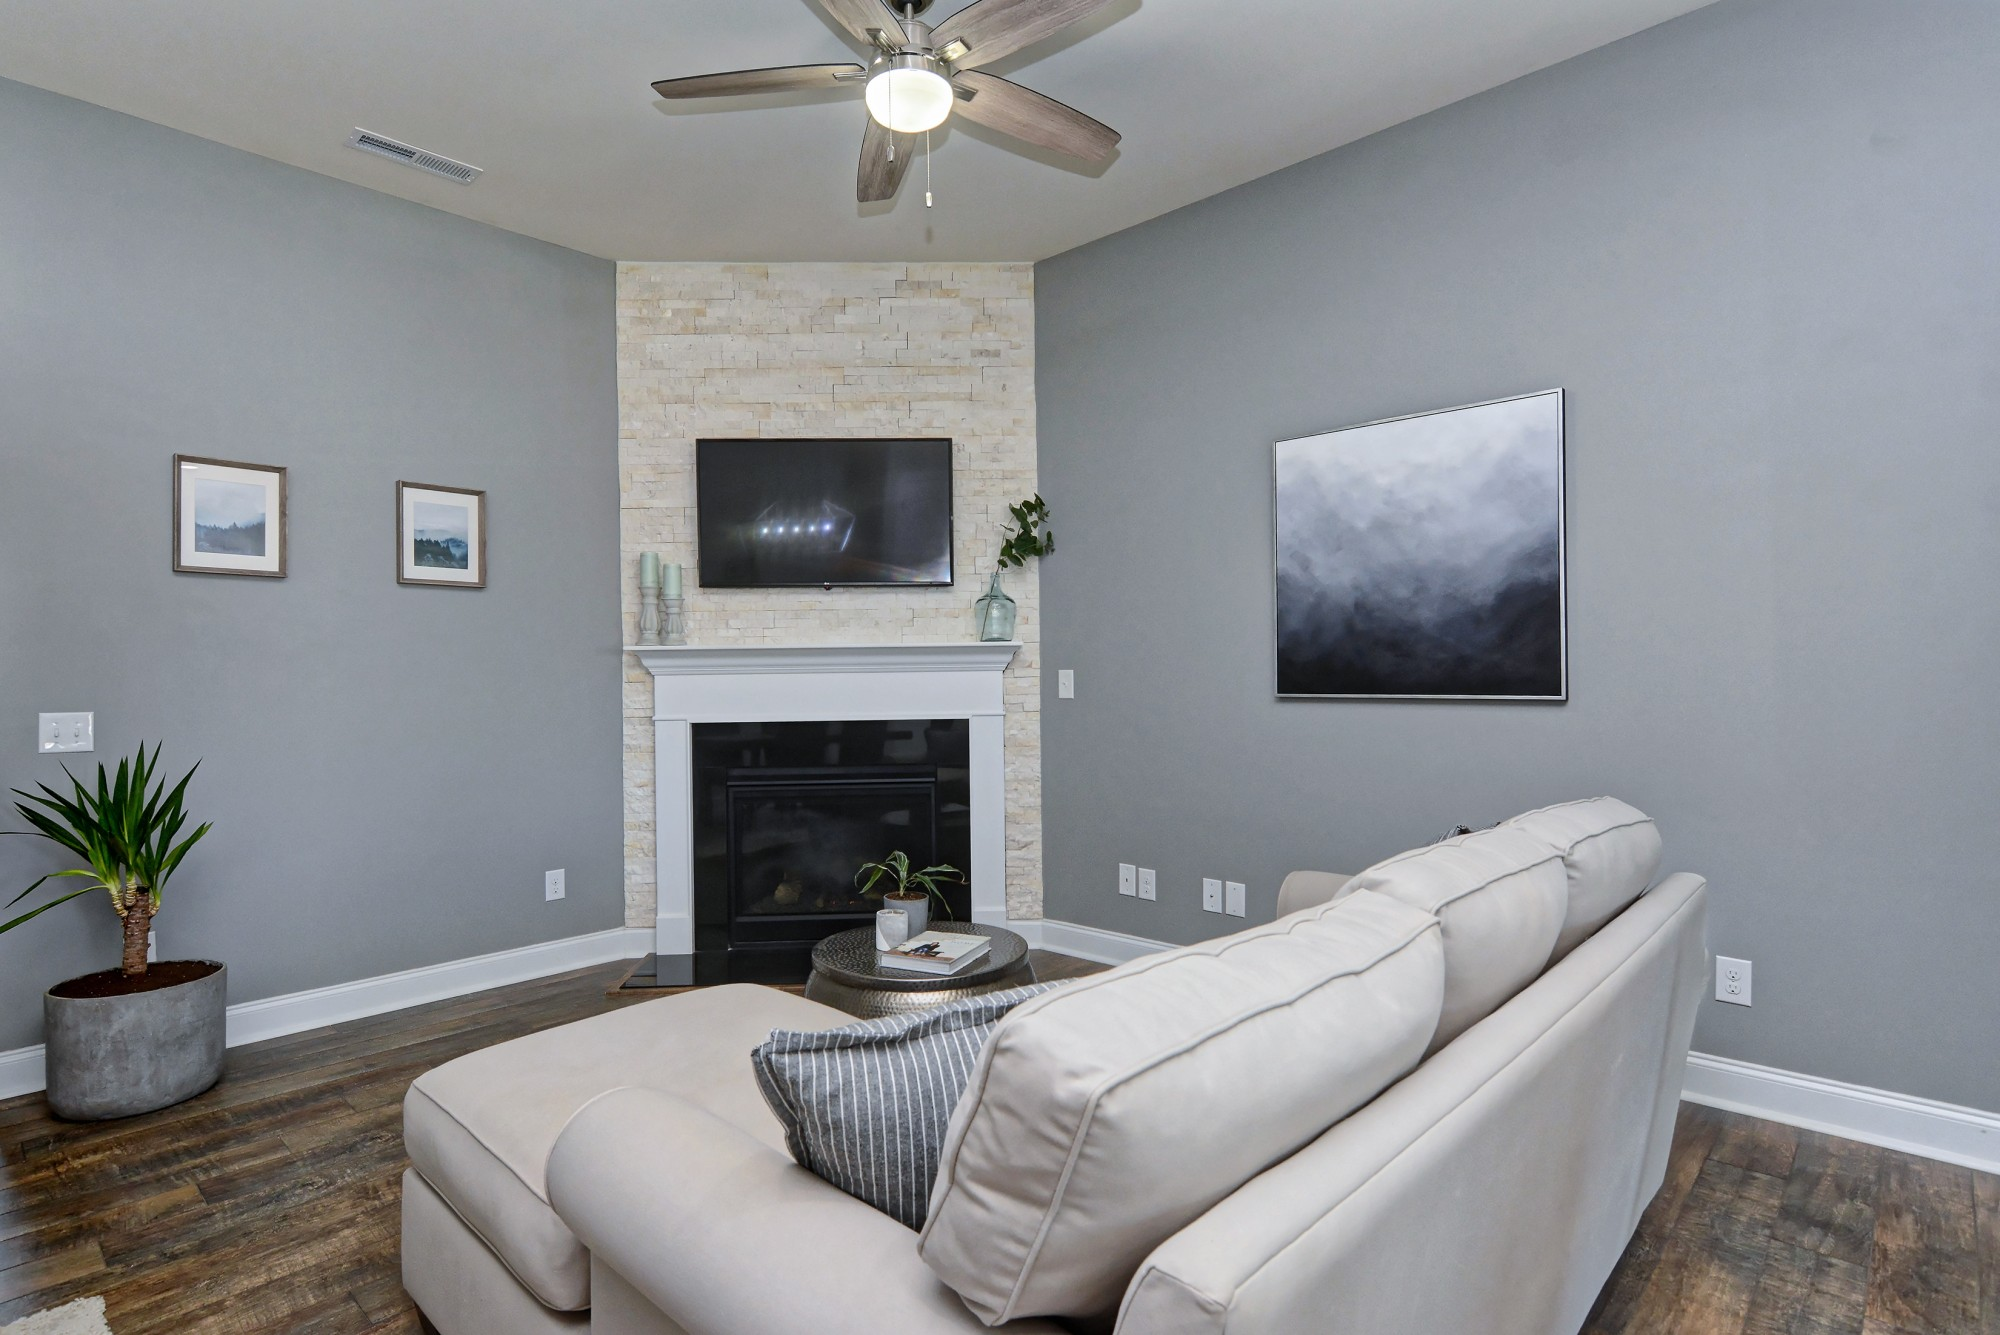 Living Area With Lighted Ceiling Fan